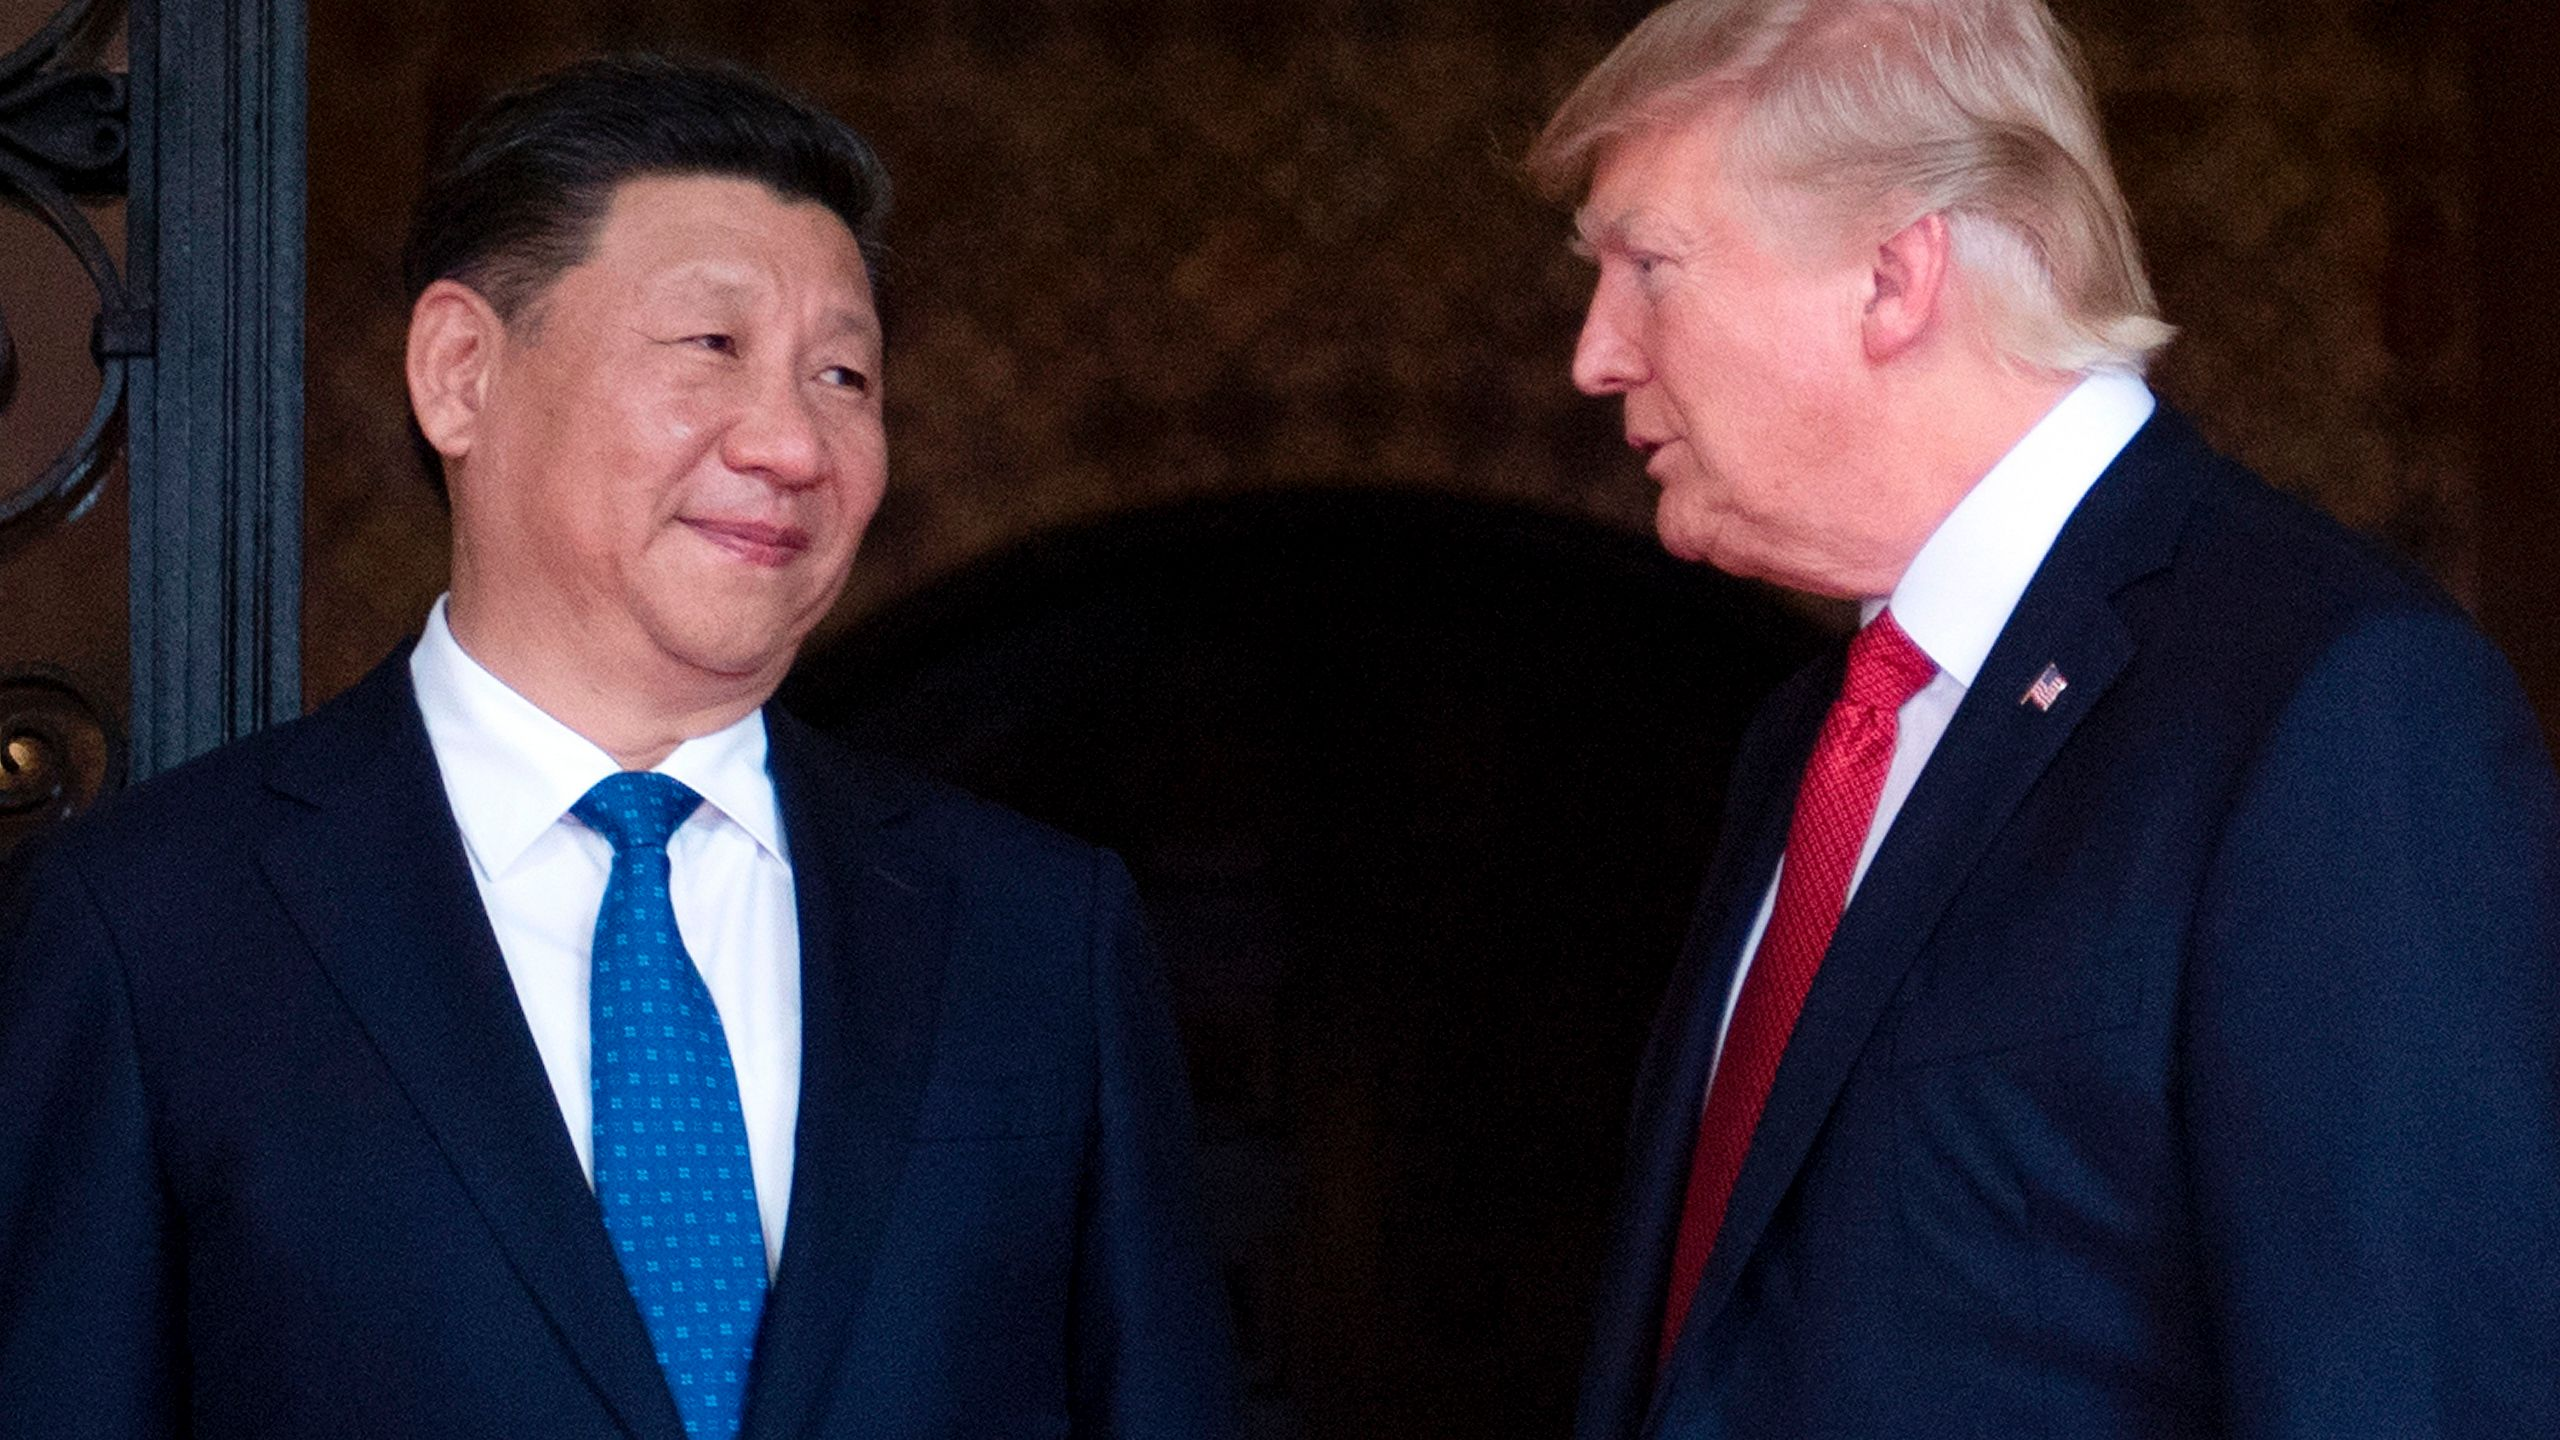 US President Donald Trump (R) welcomes Chinese President Xi Jinping (L) to the Mar-a-Lago estate in West Palm Beach, Florida, on April 6, 2017. (Credit: JIM WATSON/AFP/Getty Images)